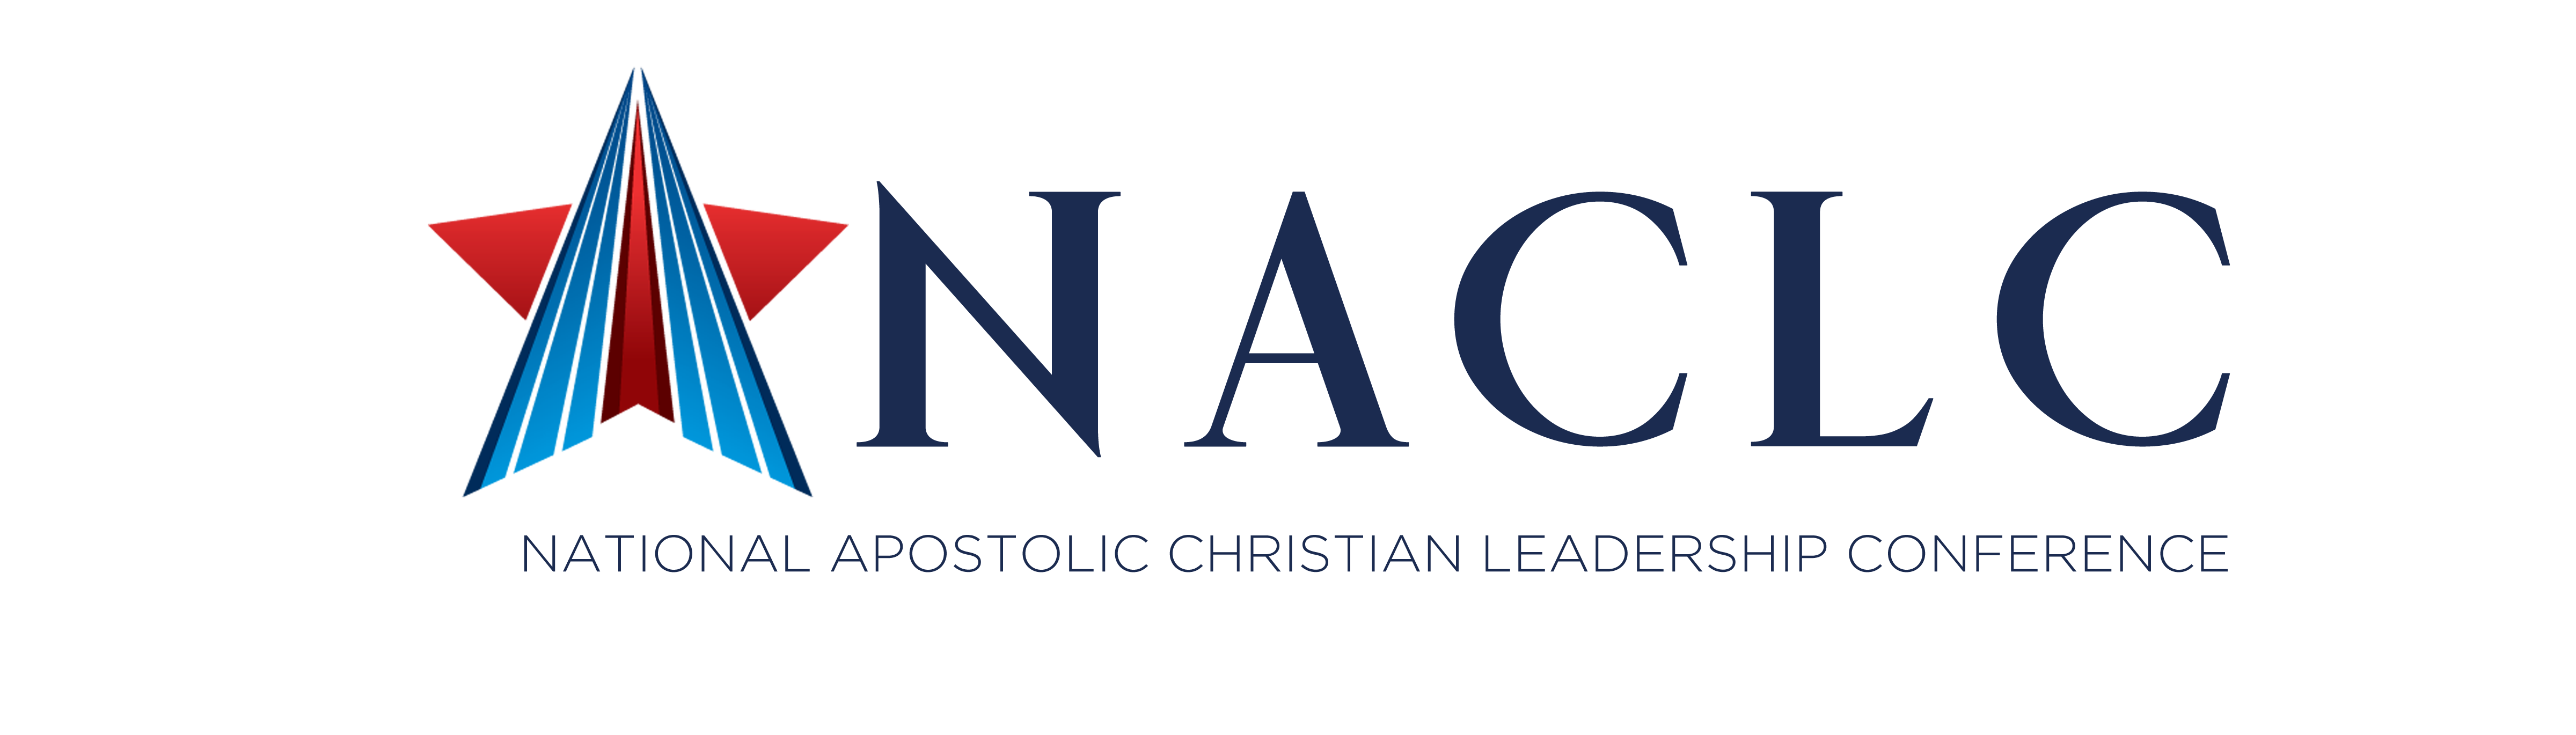 NACLC Organization Monthly Membership ($1-3M)